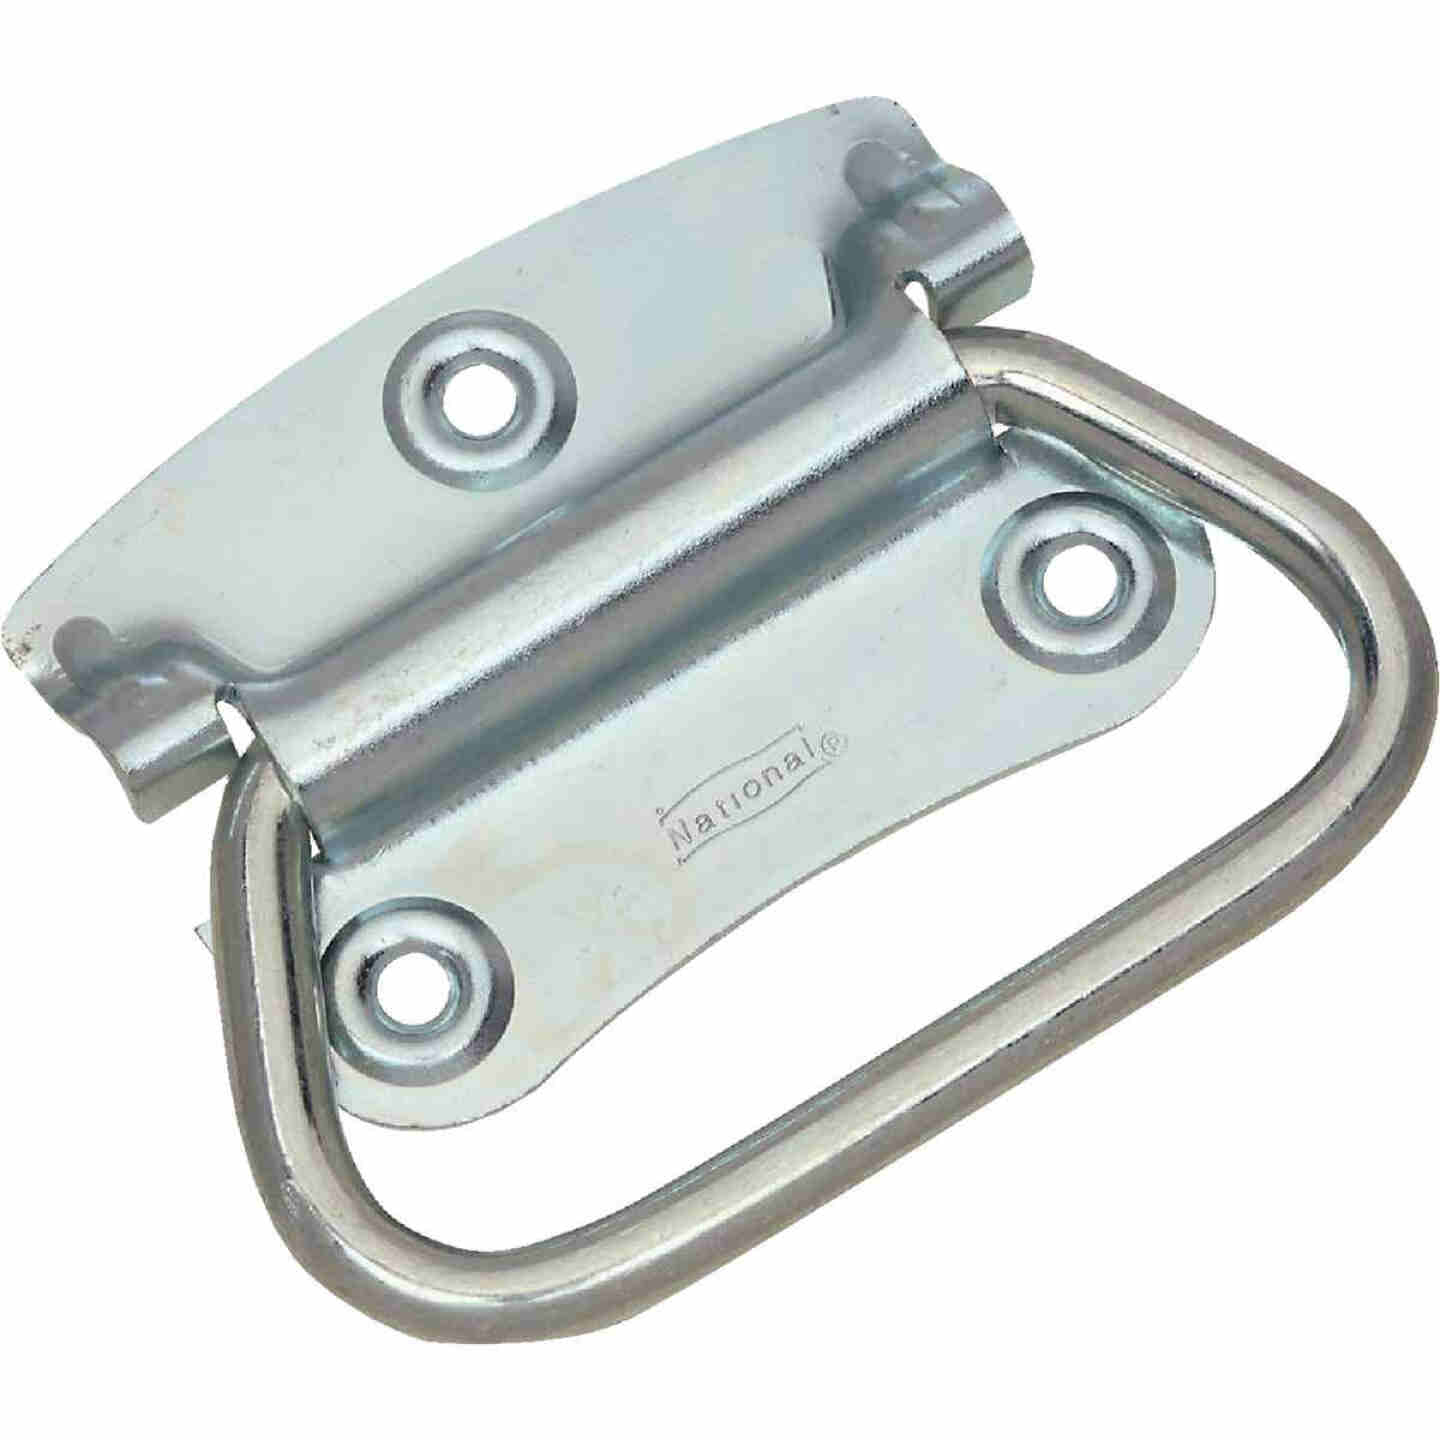 "National Zinc 2 3/4"" Steel Chest Handle Image 1"